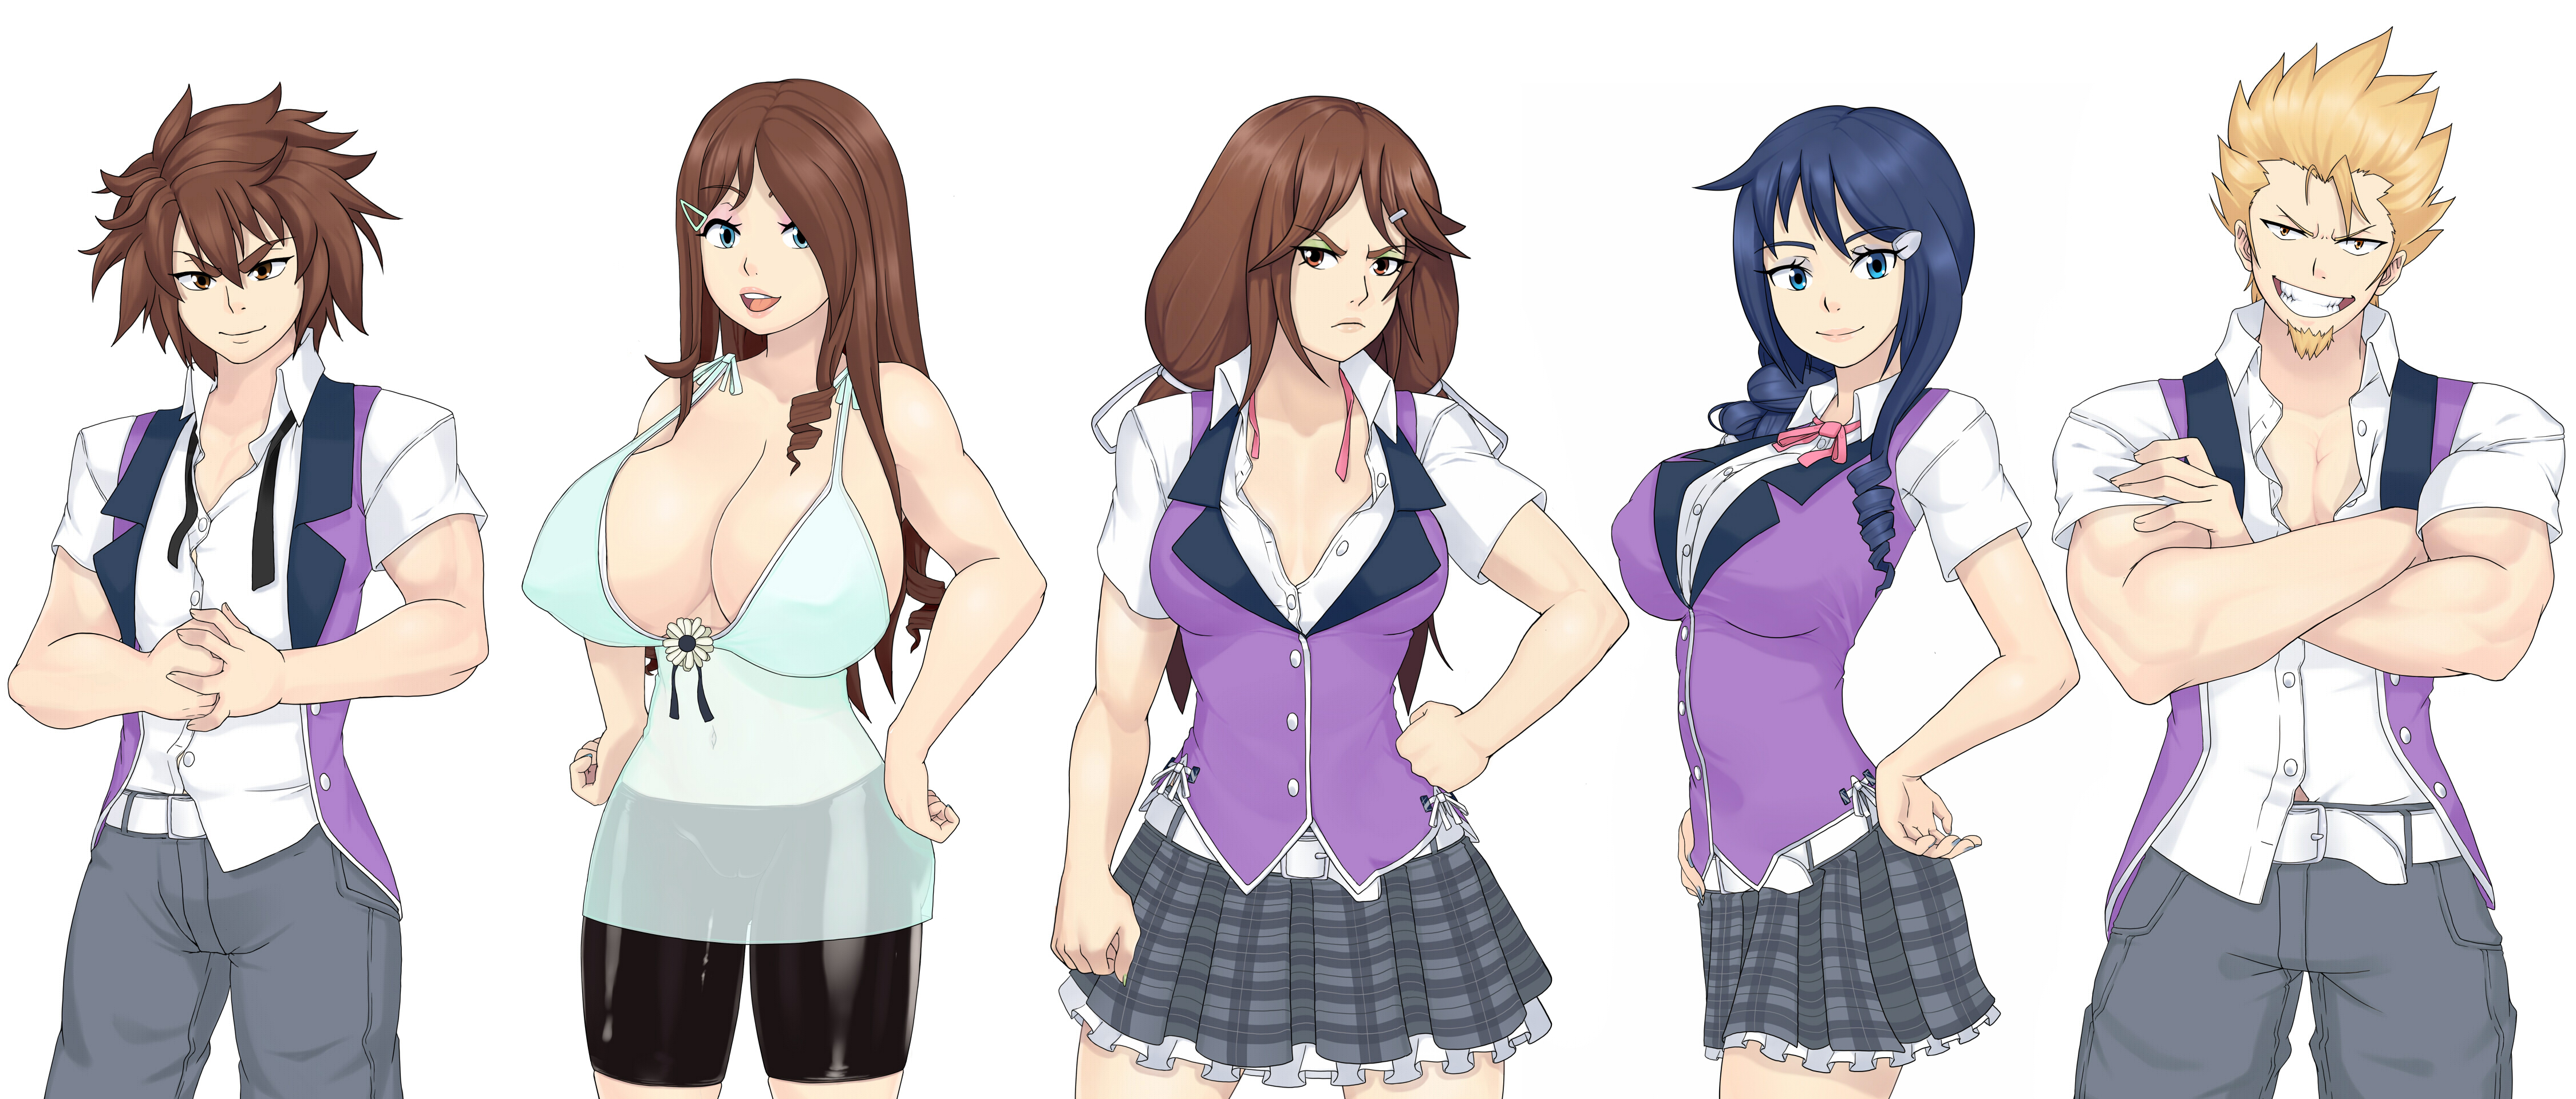 some swimsuit previews 4 | SpiralVortexPlay